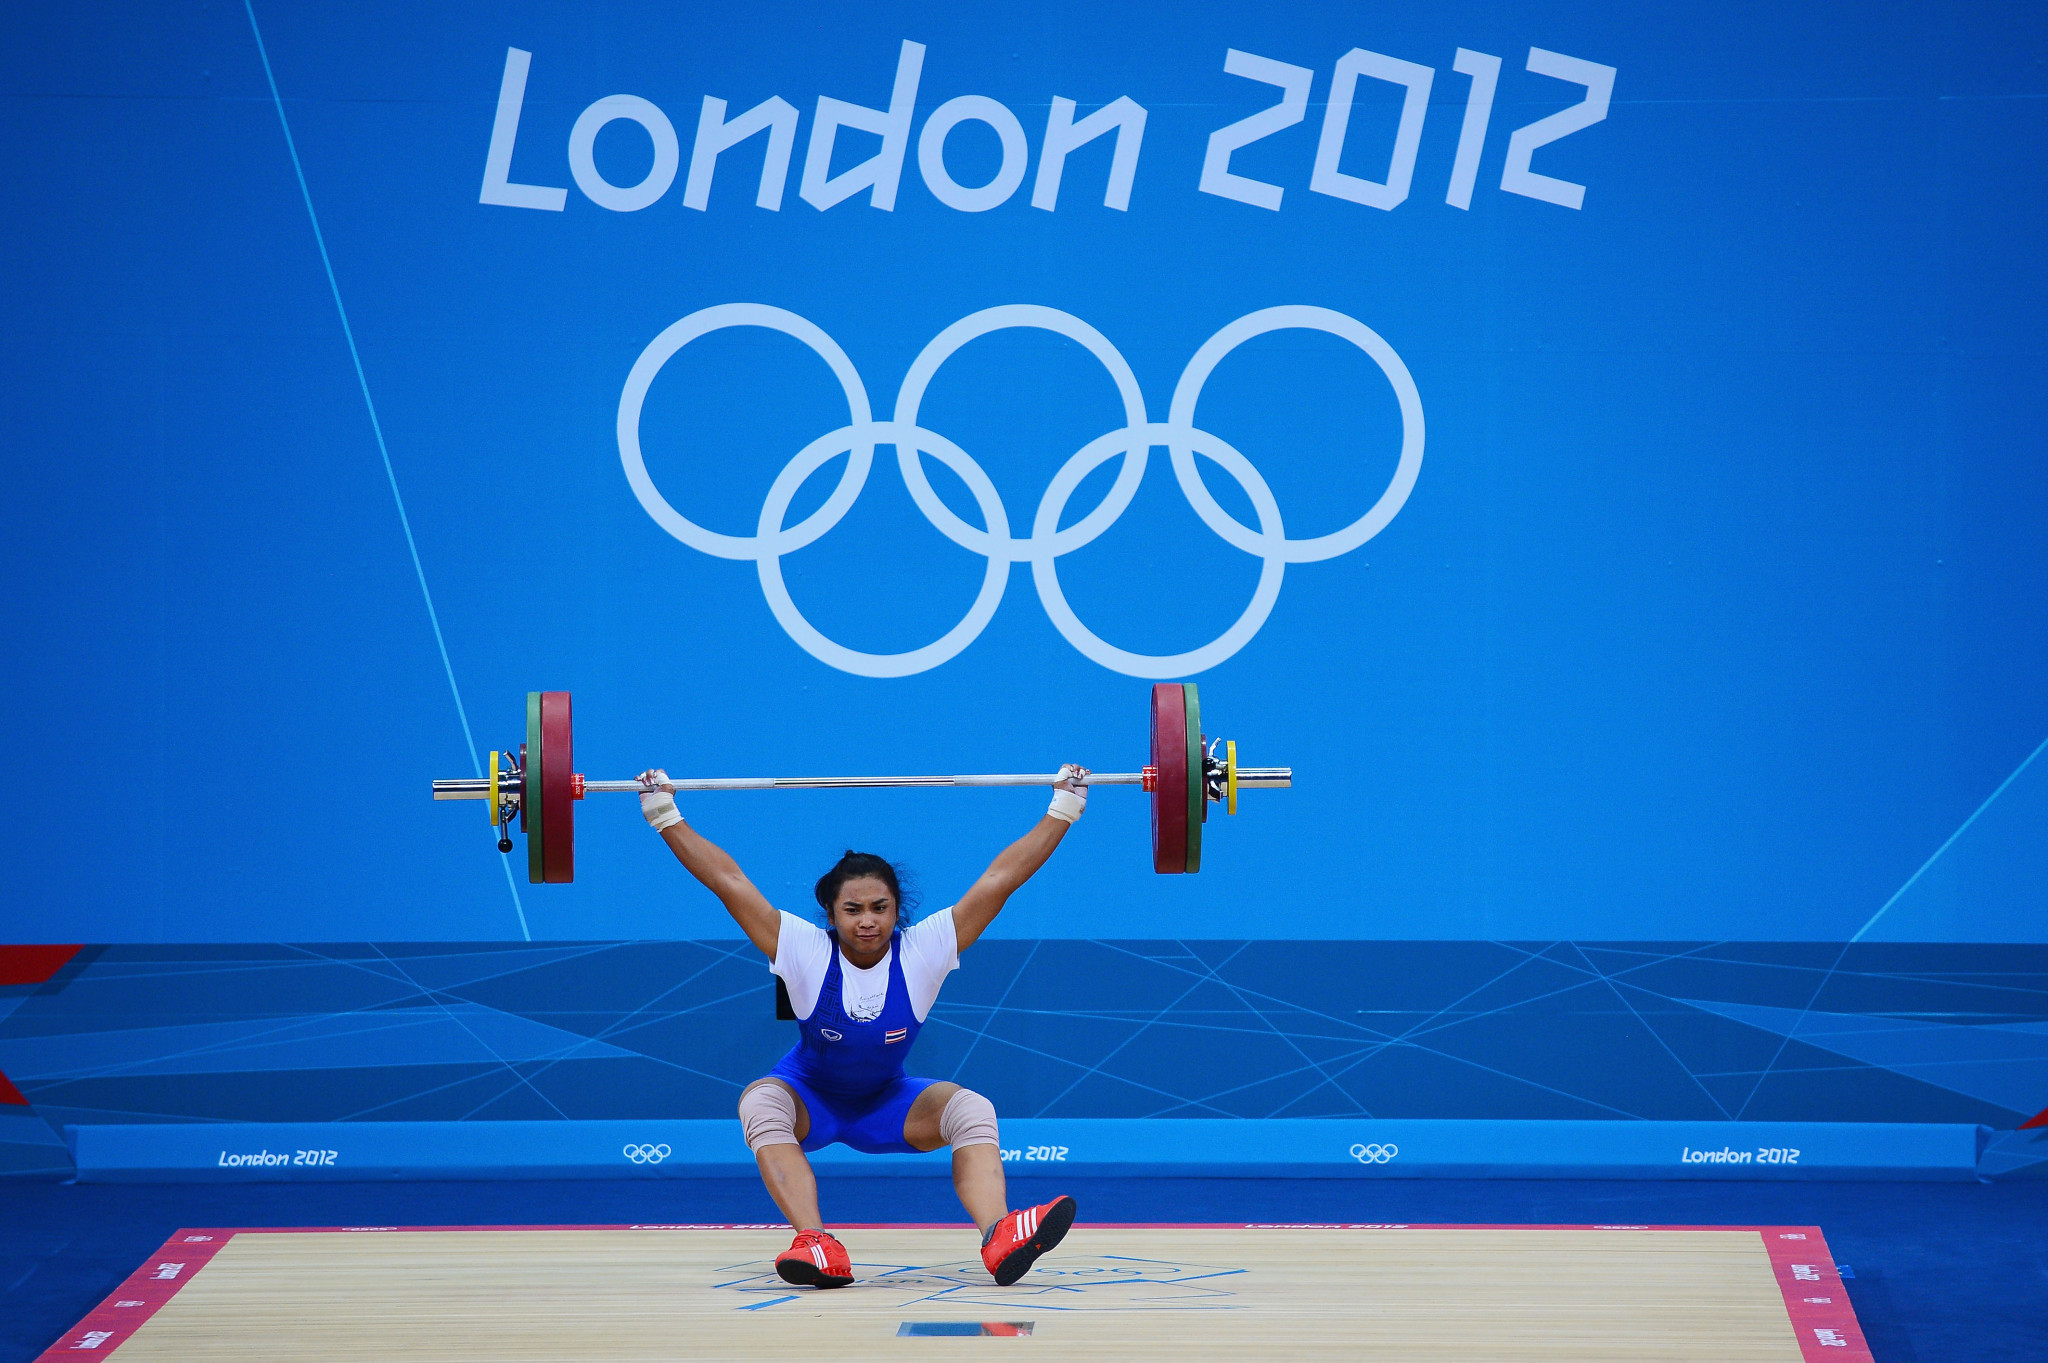 Siripuch Gulnoi may lose the bronze medal she won at London 2012 when she competed under the name Rattikan Gulnoi ©Getty Images